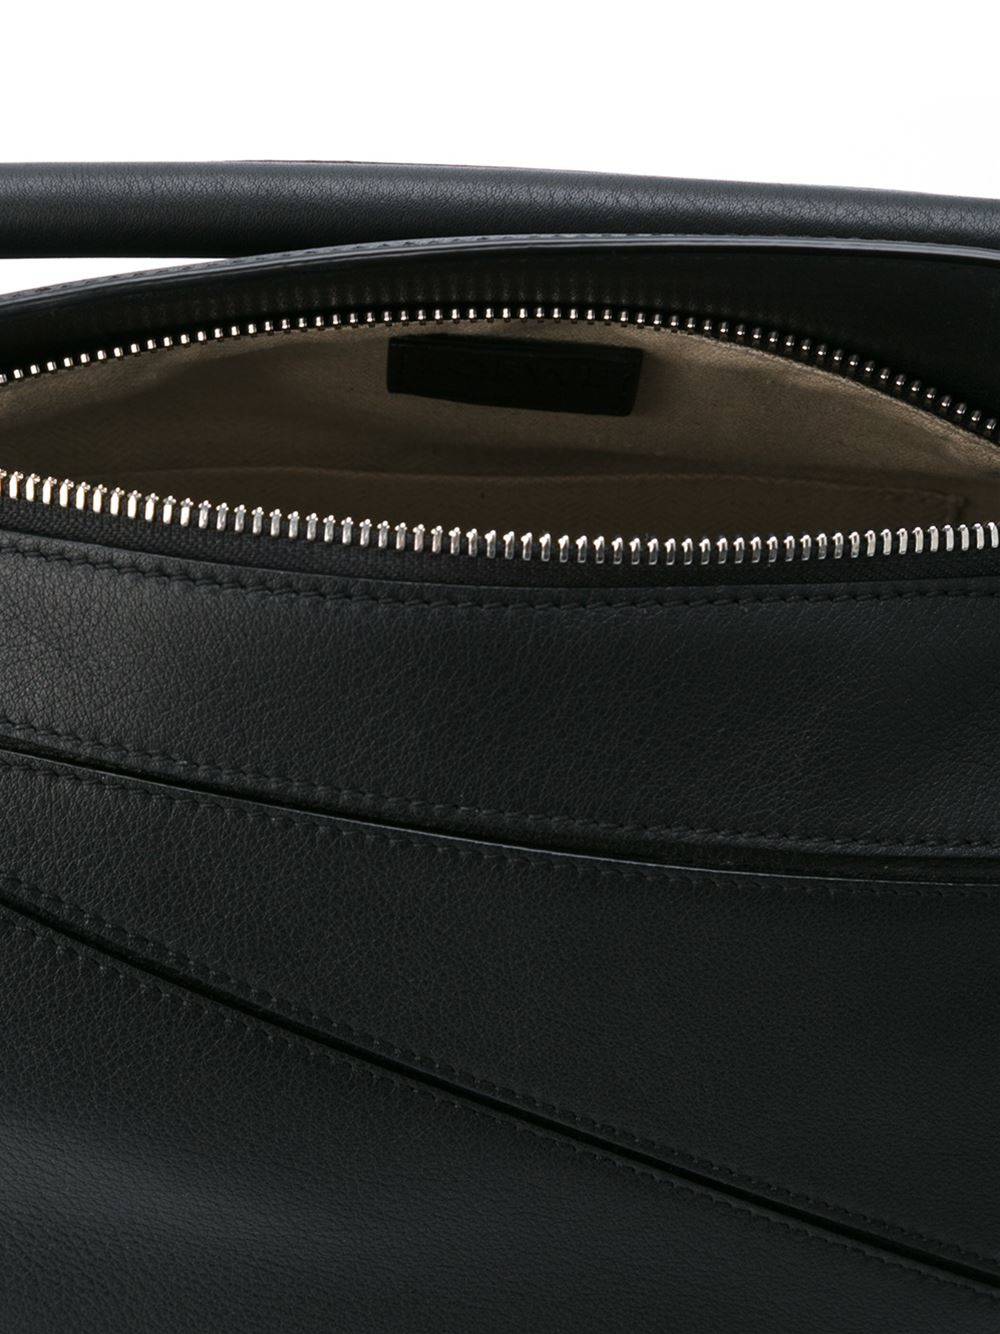 Loewe Puzzle Small Leather Tote in Black